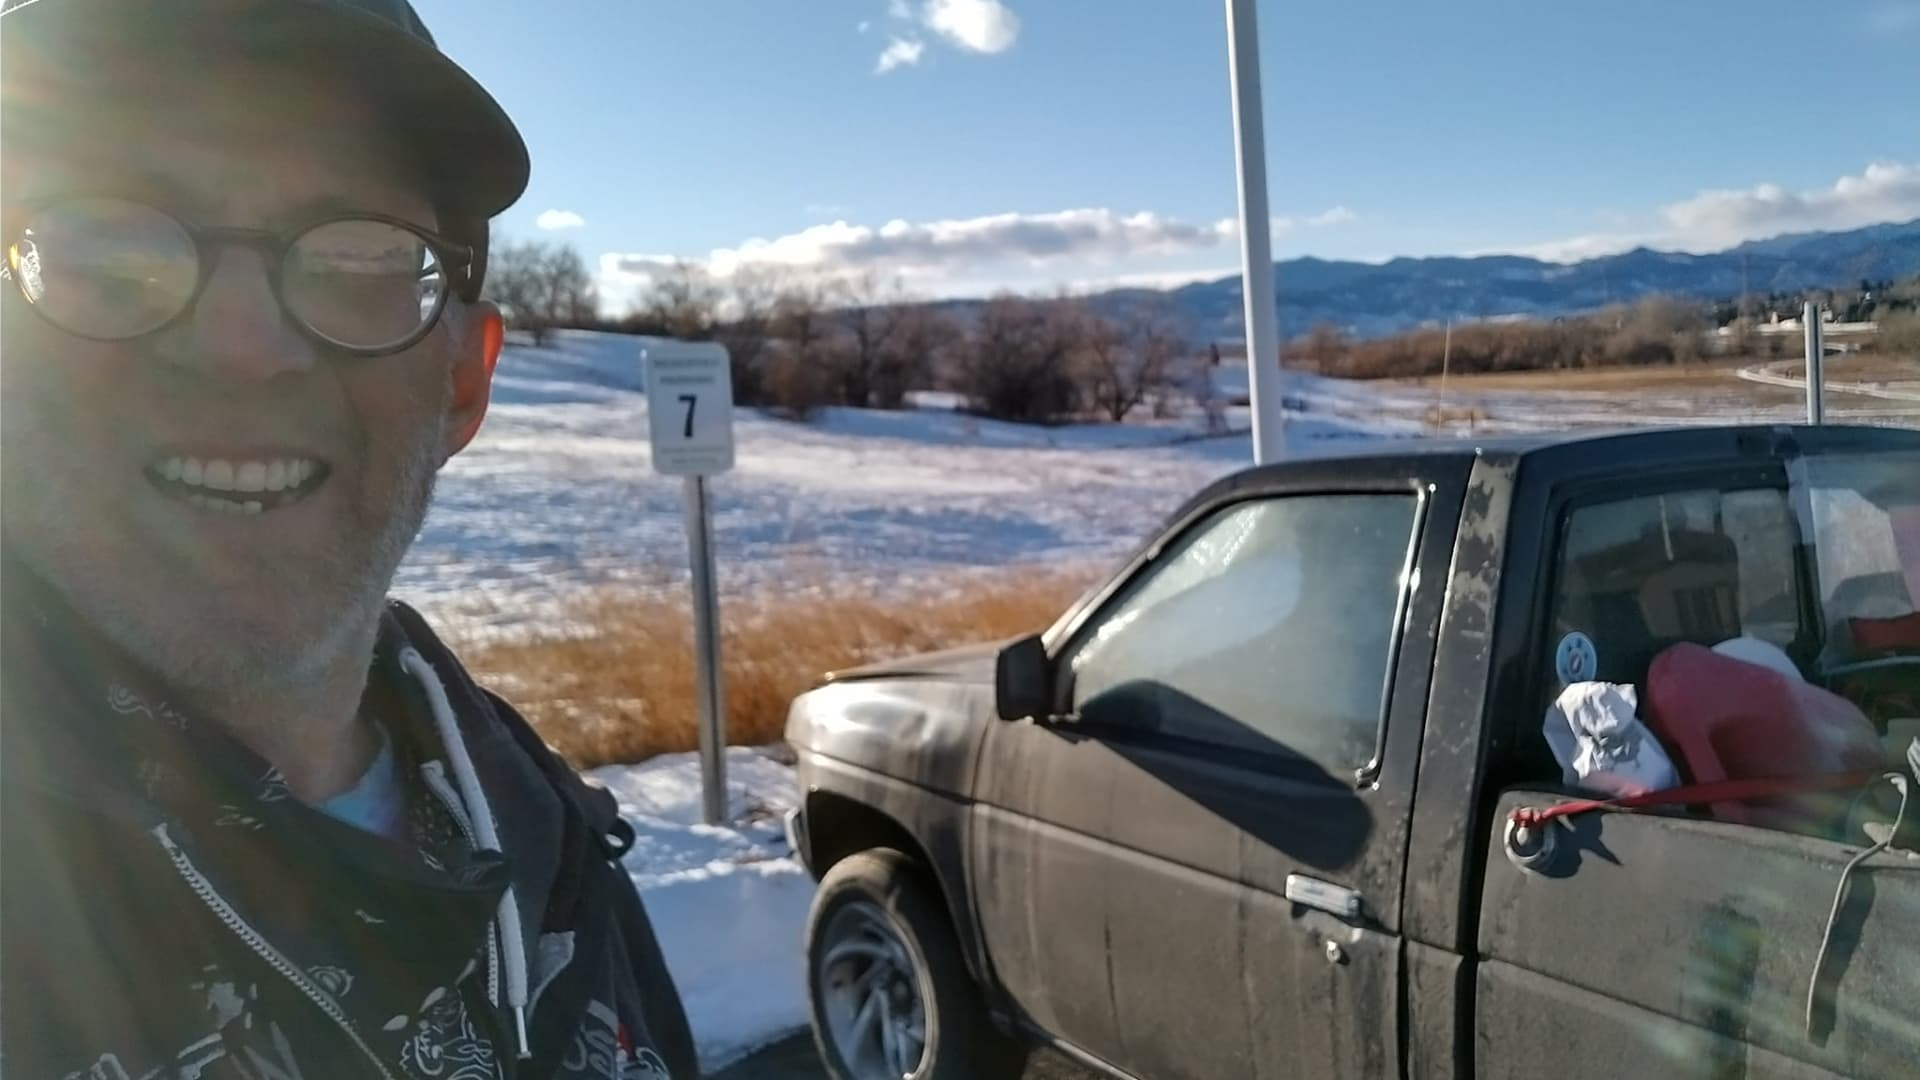 Randy Chase has slept in his 1996 Nissan pickup truck in the Denver suburbs since September.